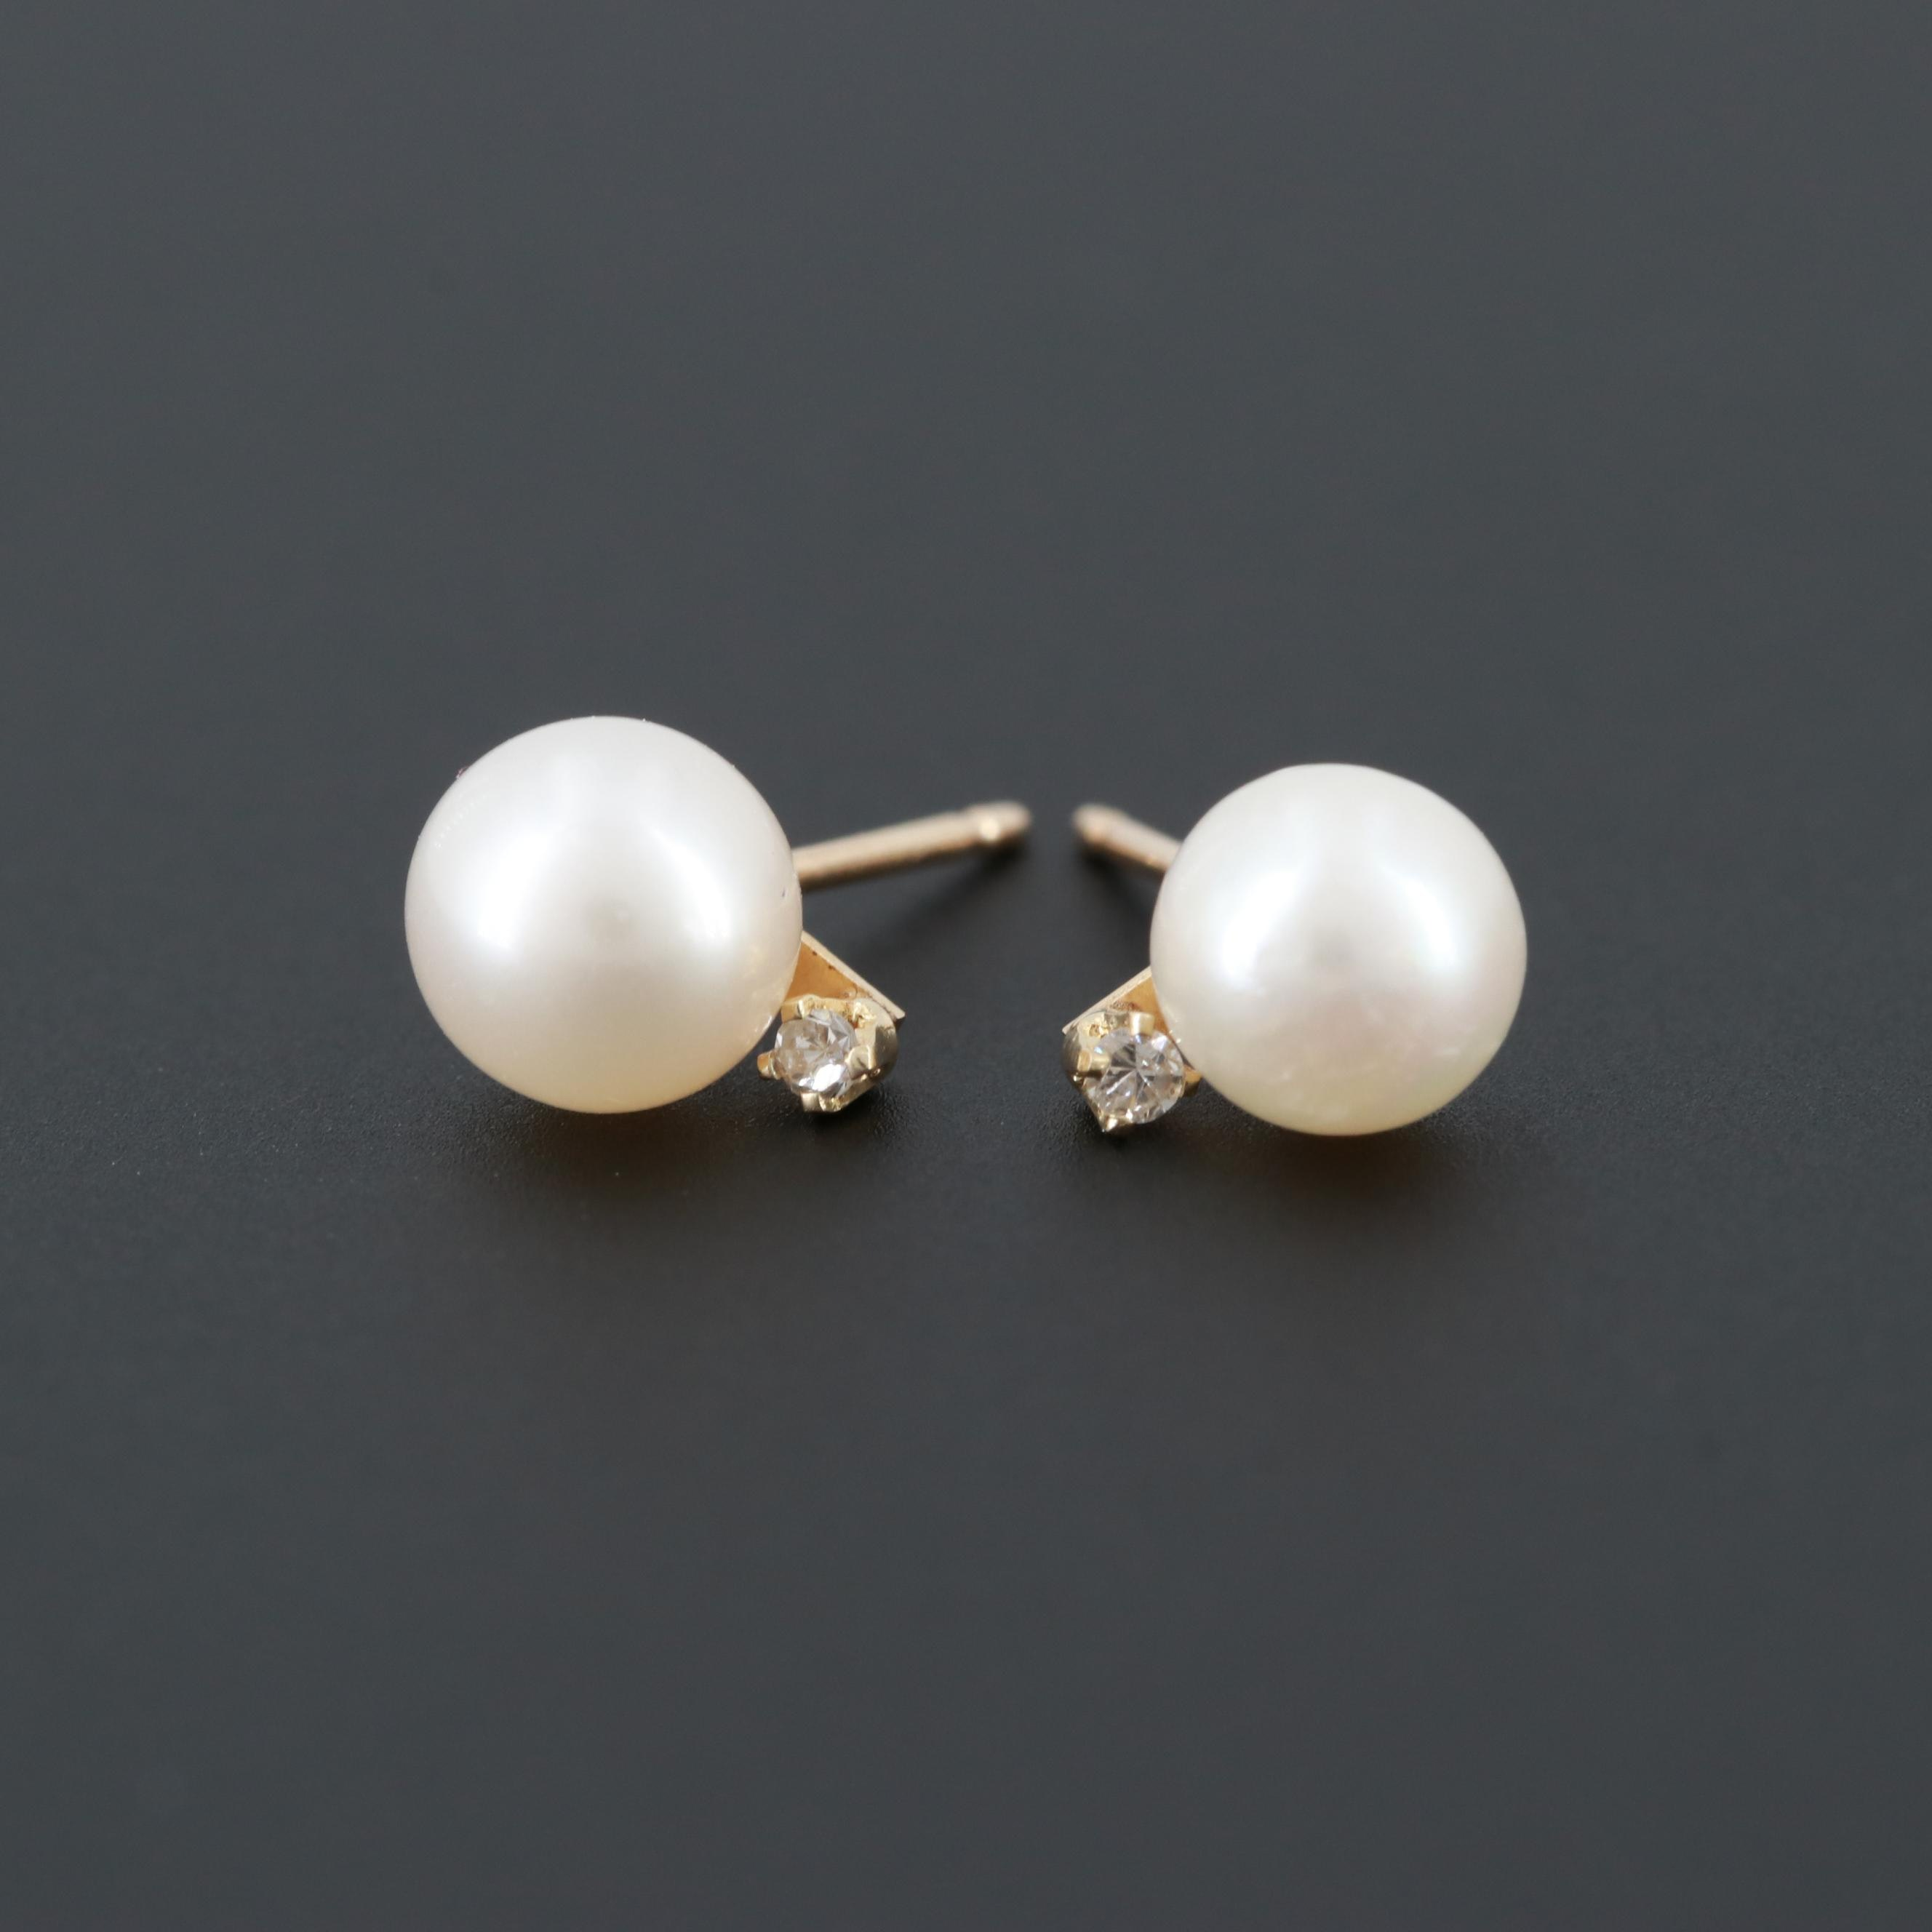 10K Yellow Gold Cultured Pearl and Diamond Stud Earrings